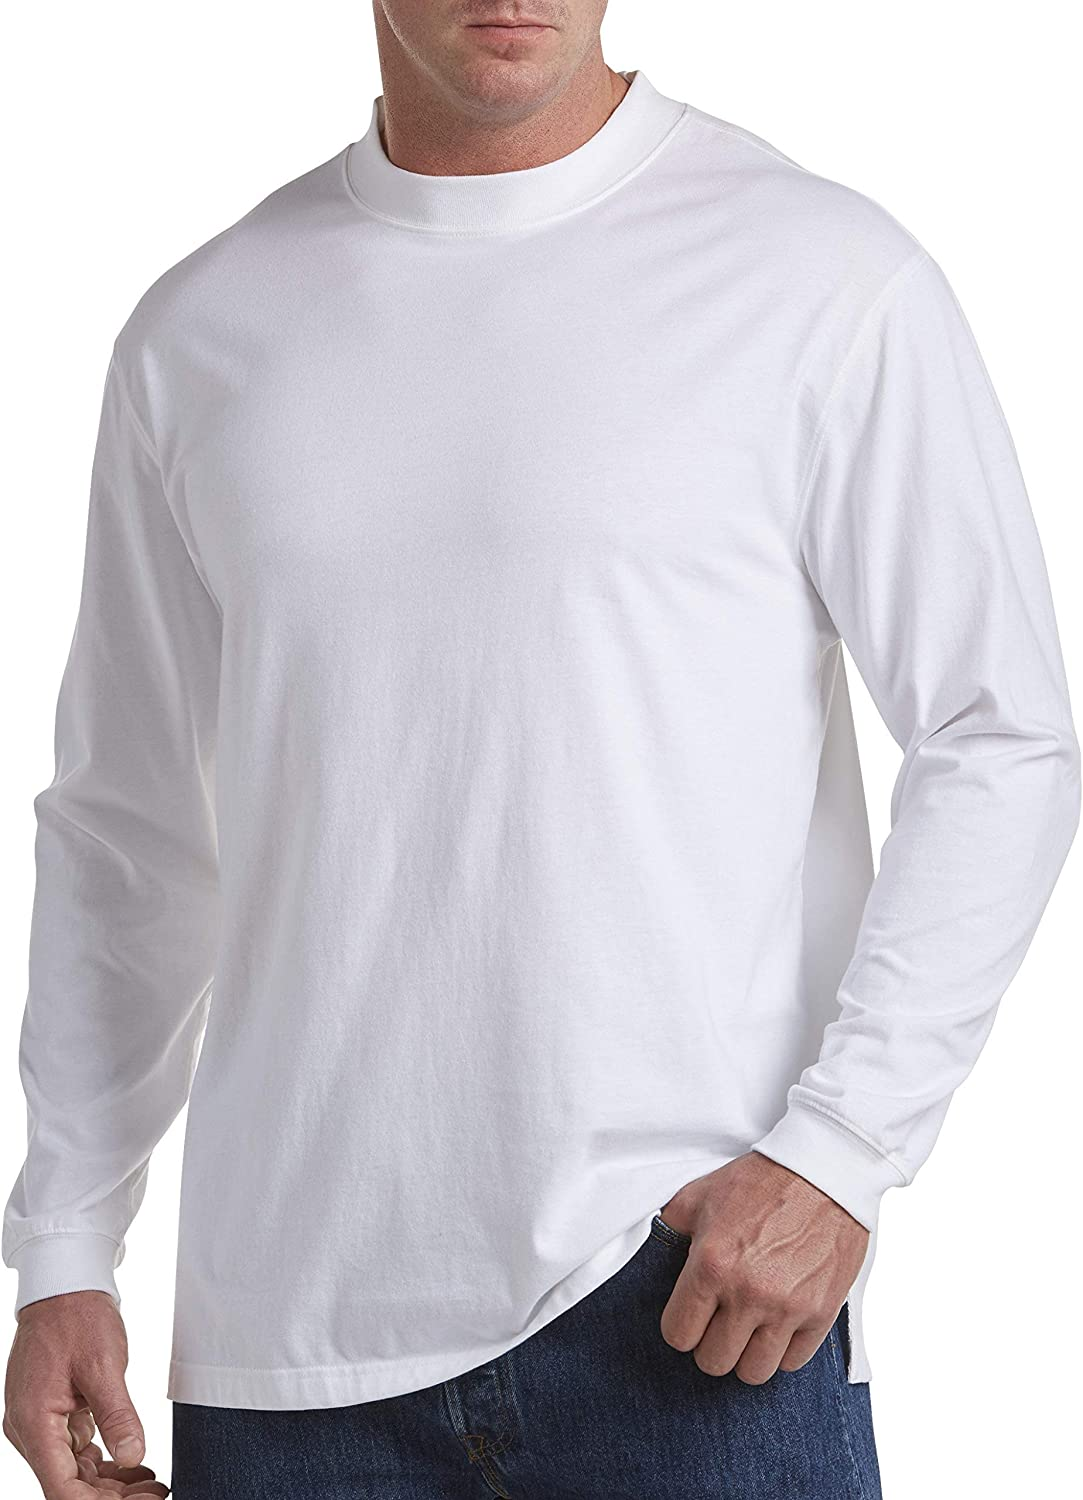 Harbor Bay by DXL Big and Tall Moisture-Wicking Long-Sleeve Shirt, White XTall